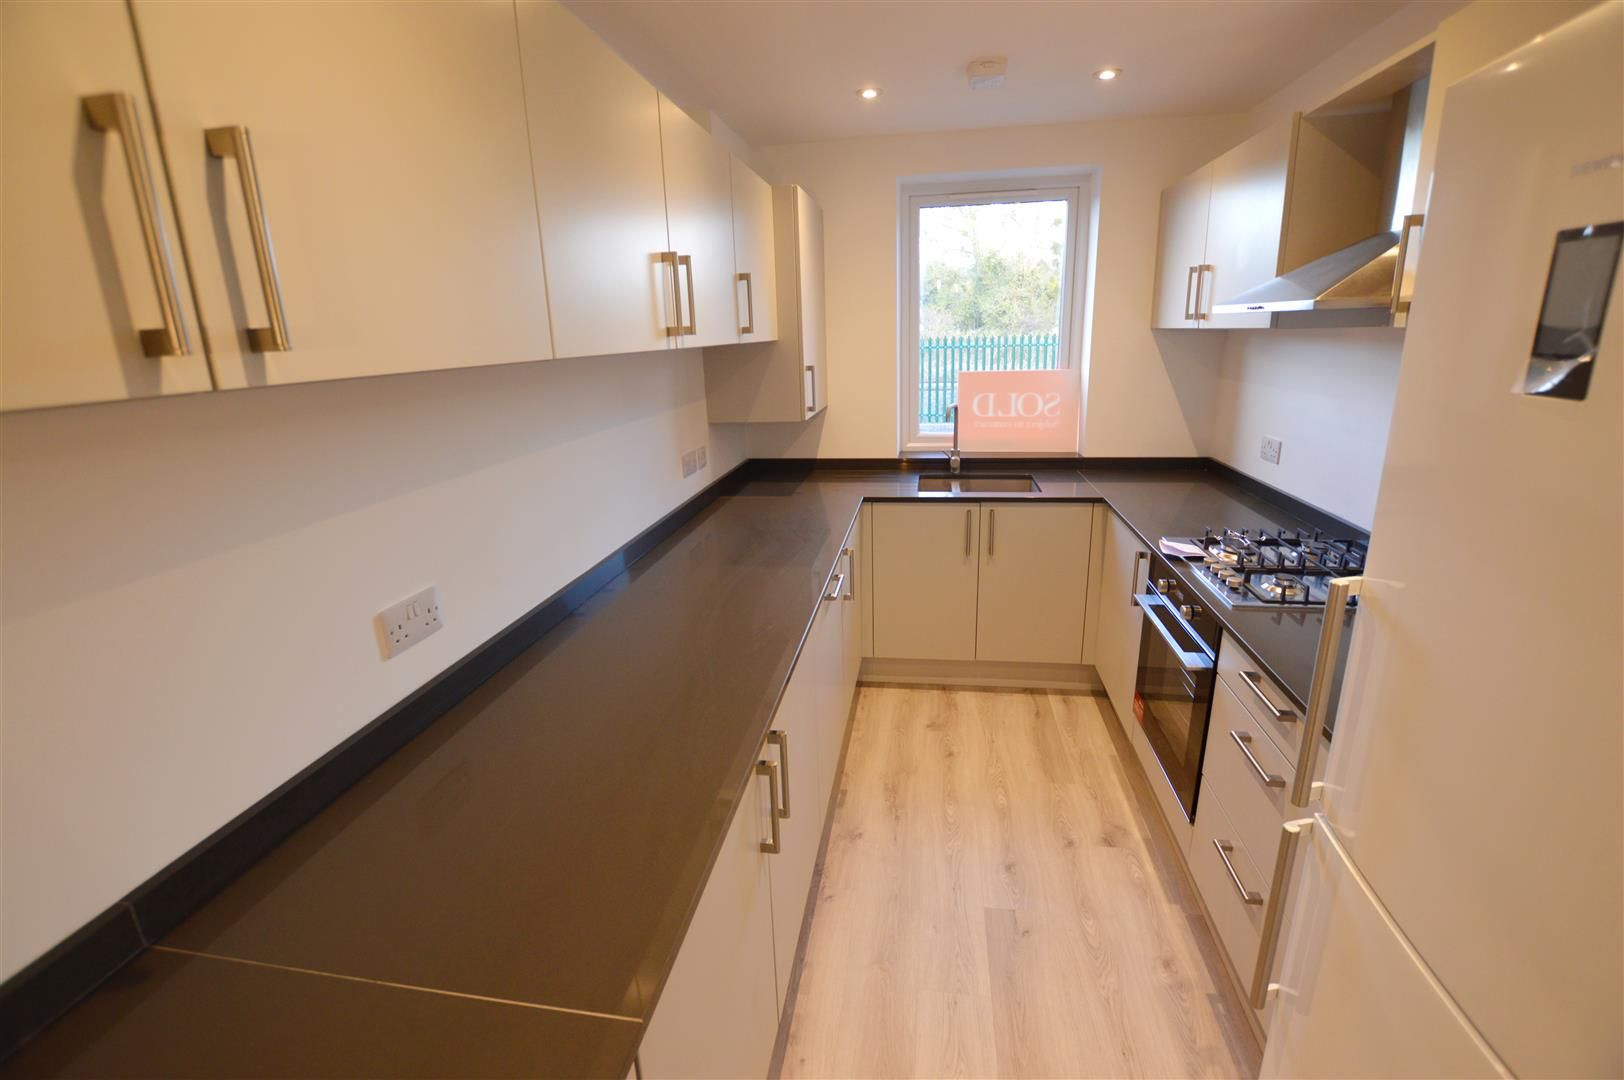 3 bed end-of-terrace for sale in Leominster 3